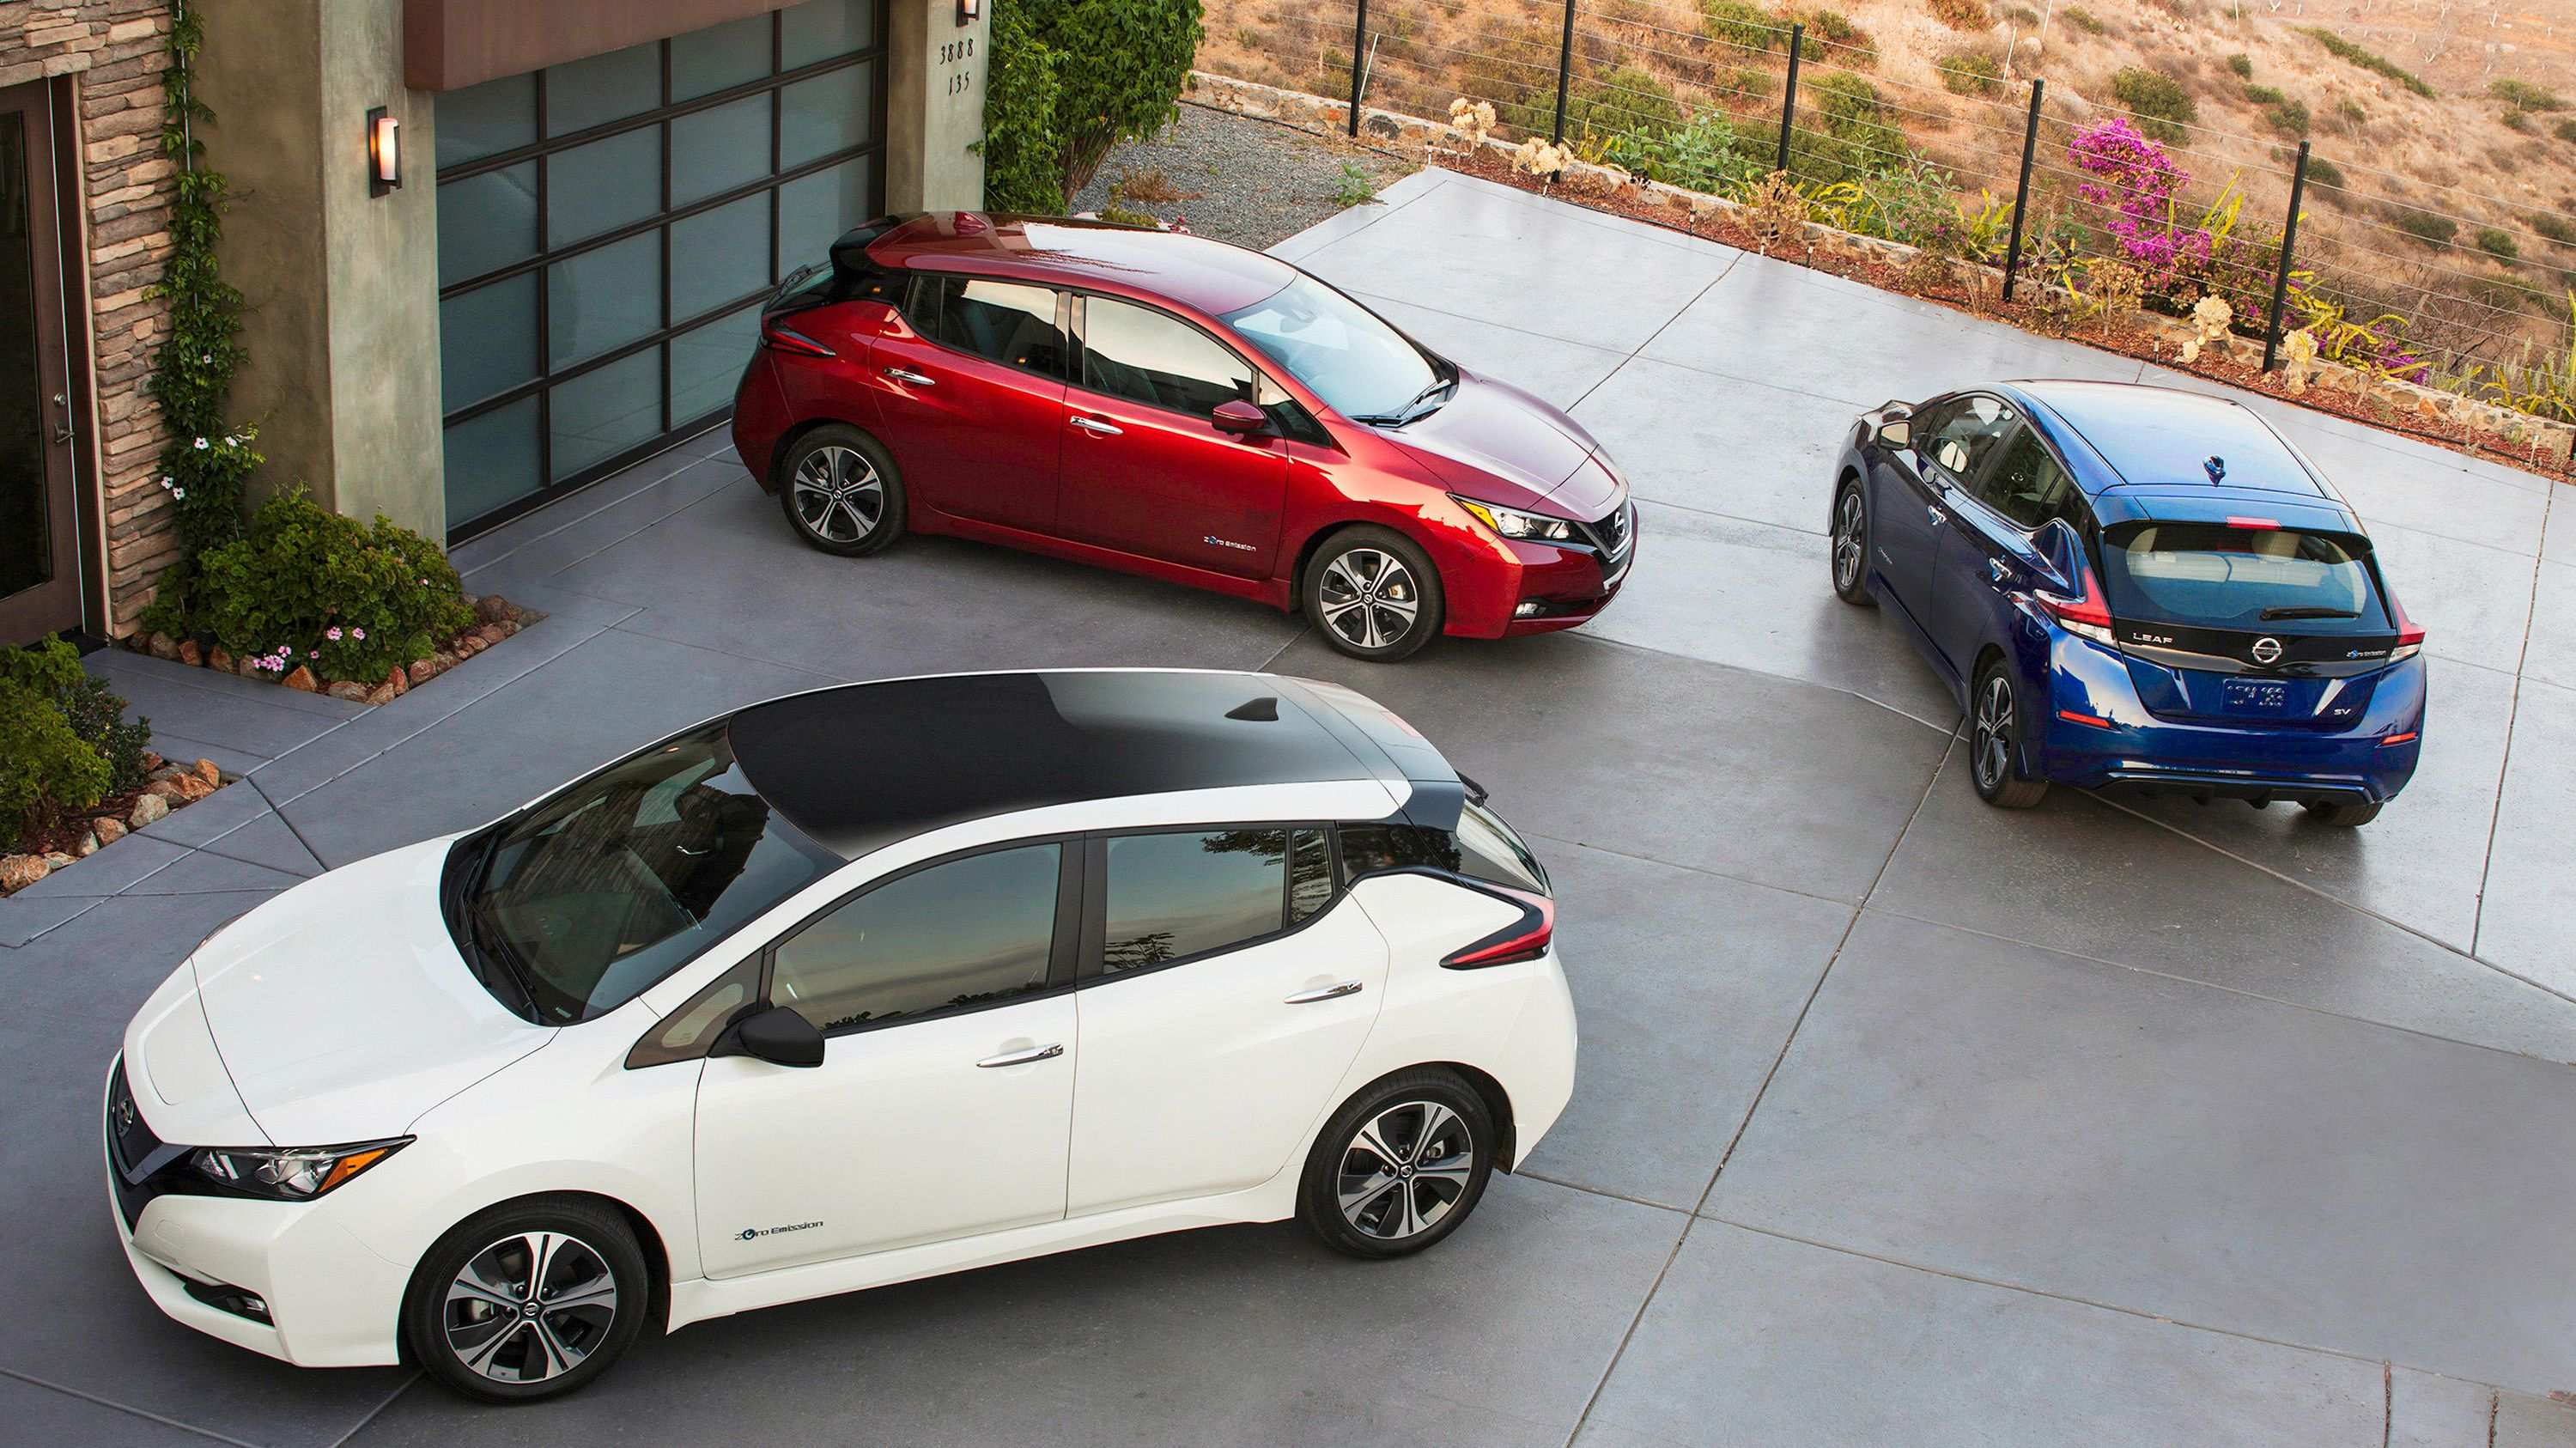 22 Great 2020 Nissan Leaf 60 Kwh Battery Performance and New Engine by 2020 Nissan Leaf 60 Kwh Battery